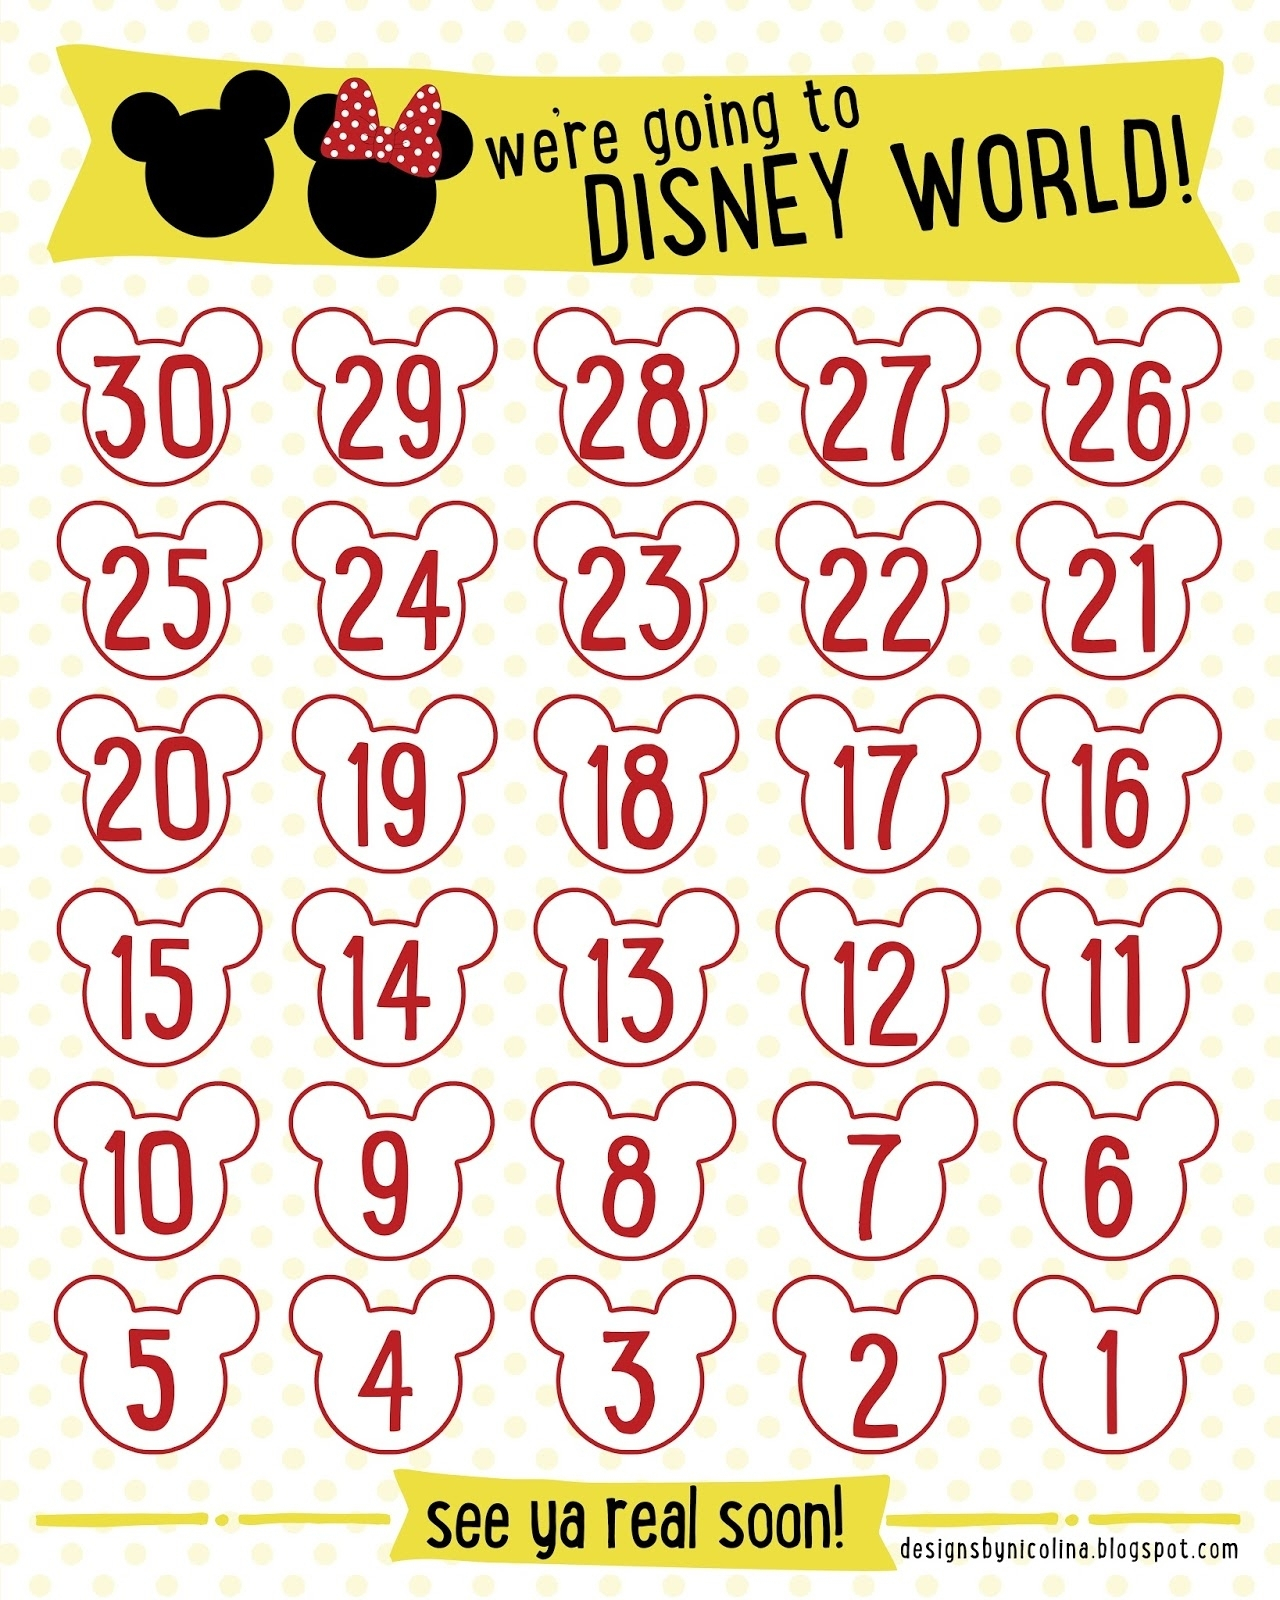 Countdown Calendar Printable Vacation | Free Calendar